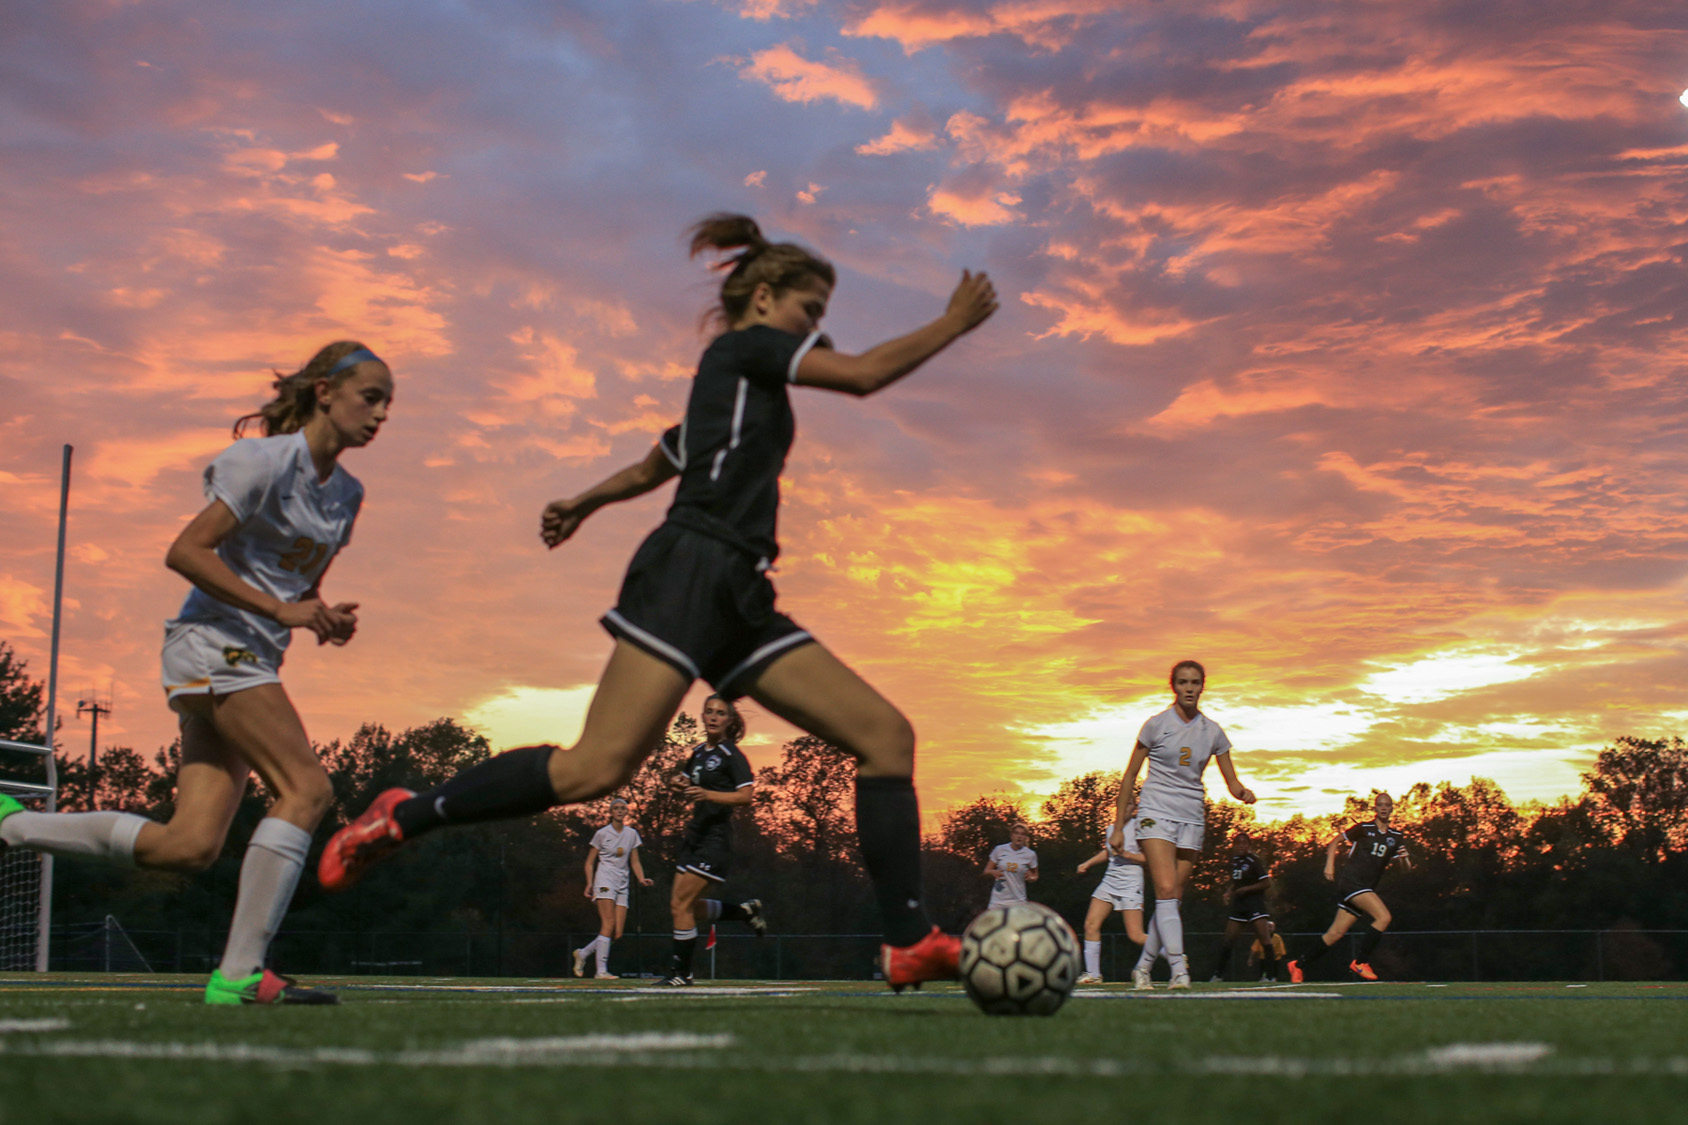 Best of Baltimore-area high school sports photos, week 7